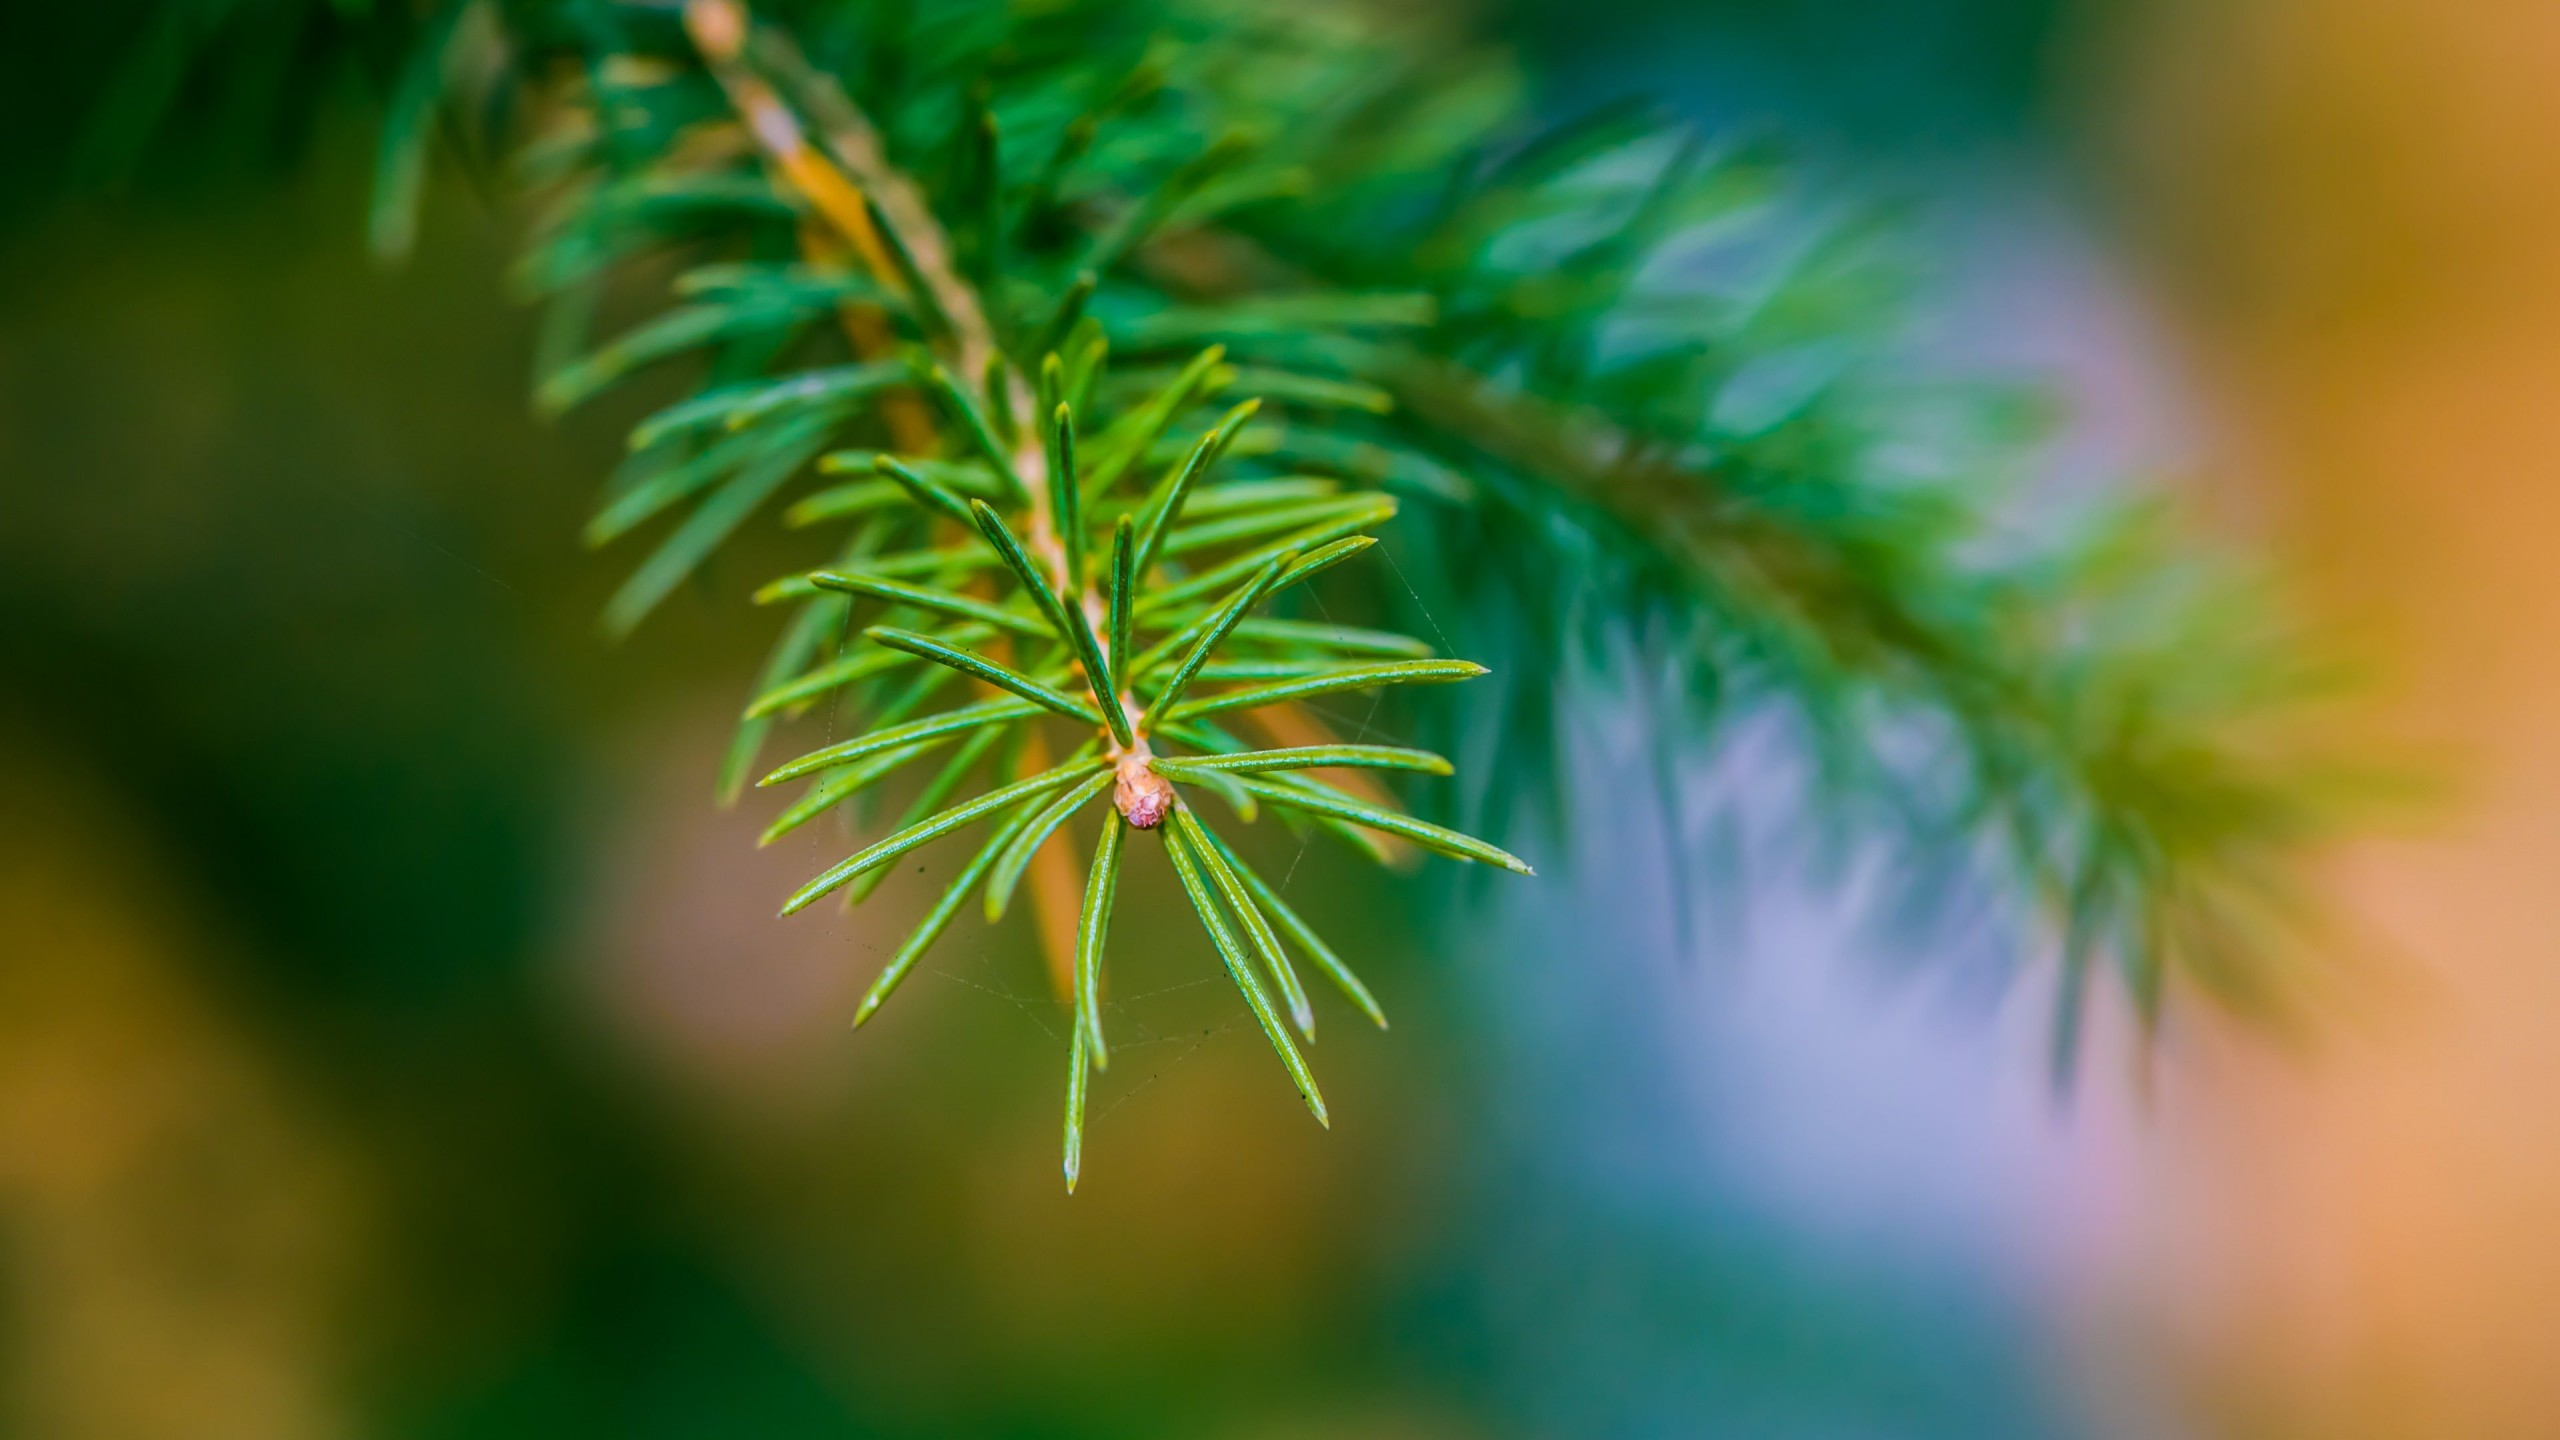 Fir Tree Branch Macro Wallpaper for Desktop 2560x1440